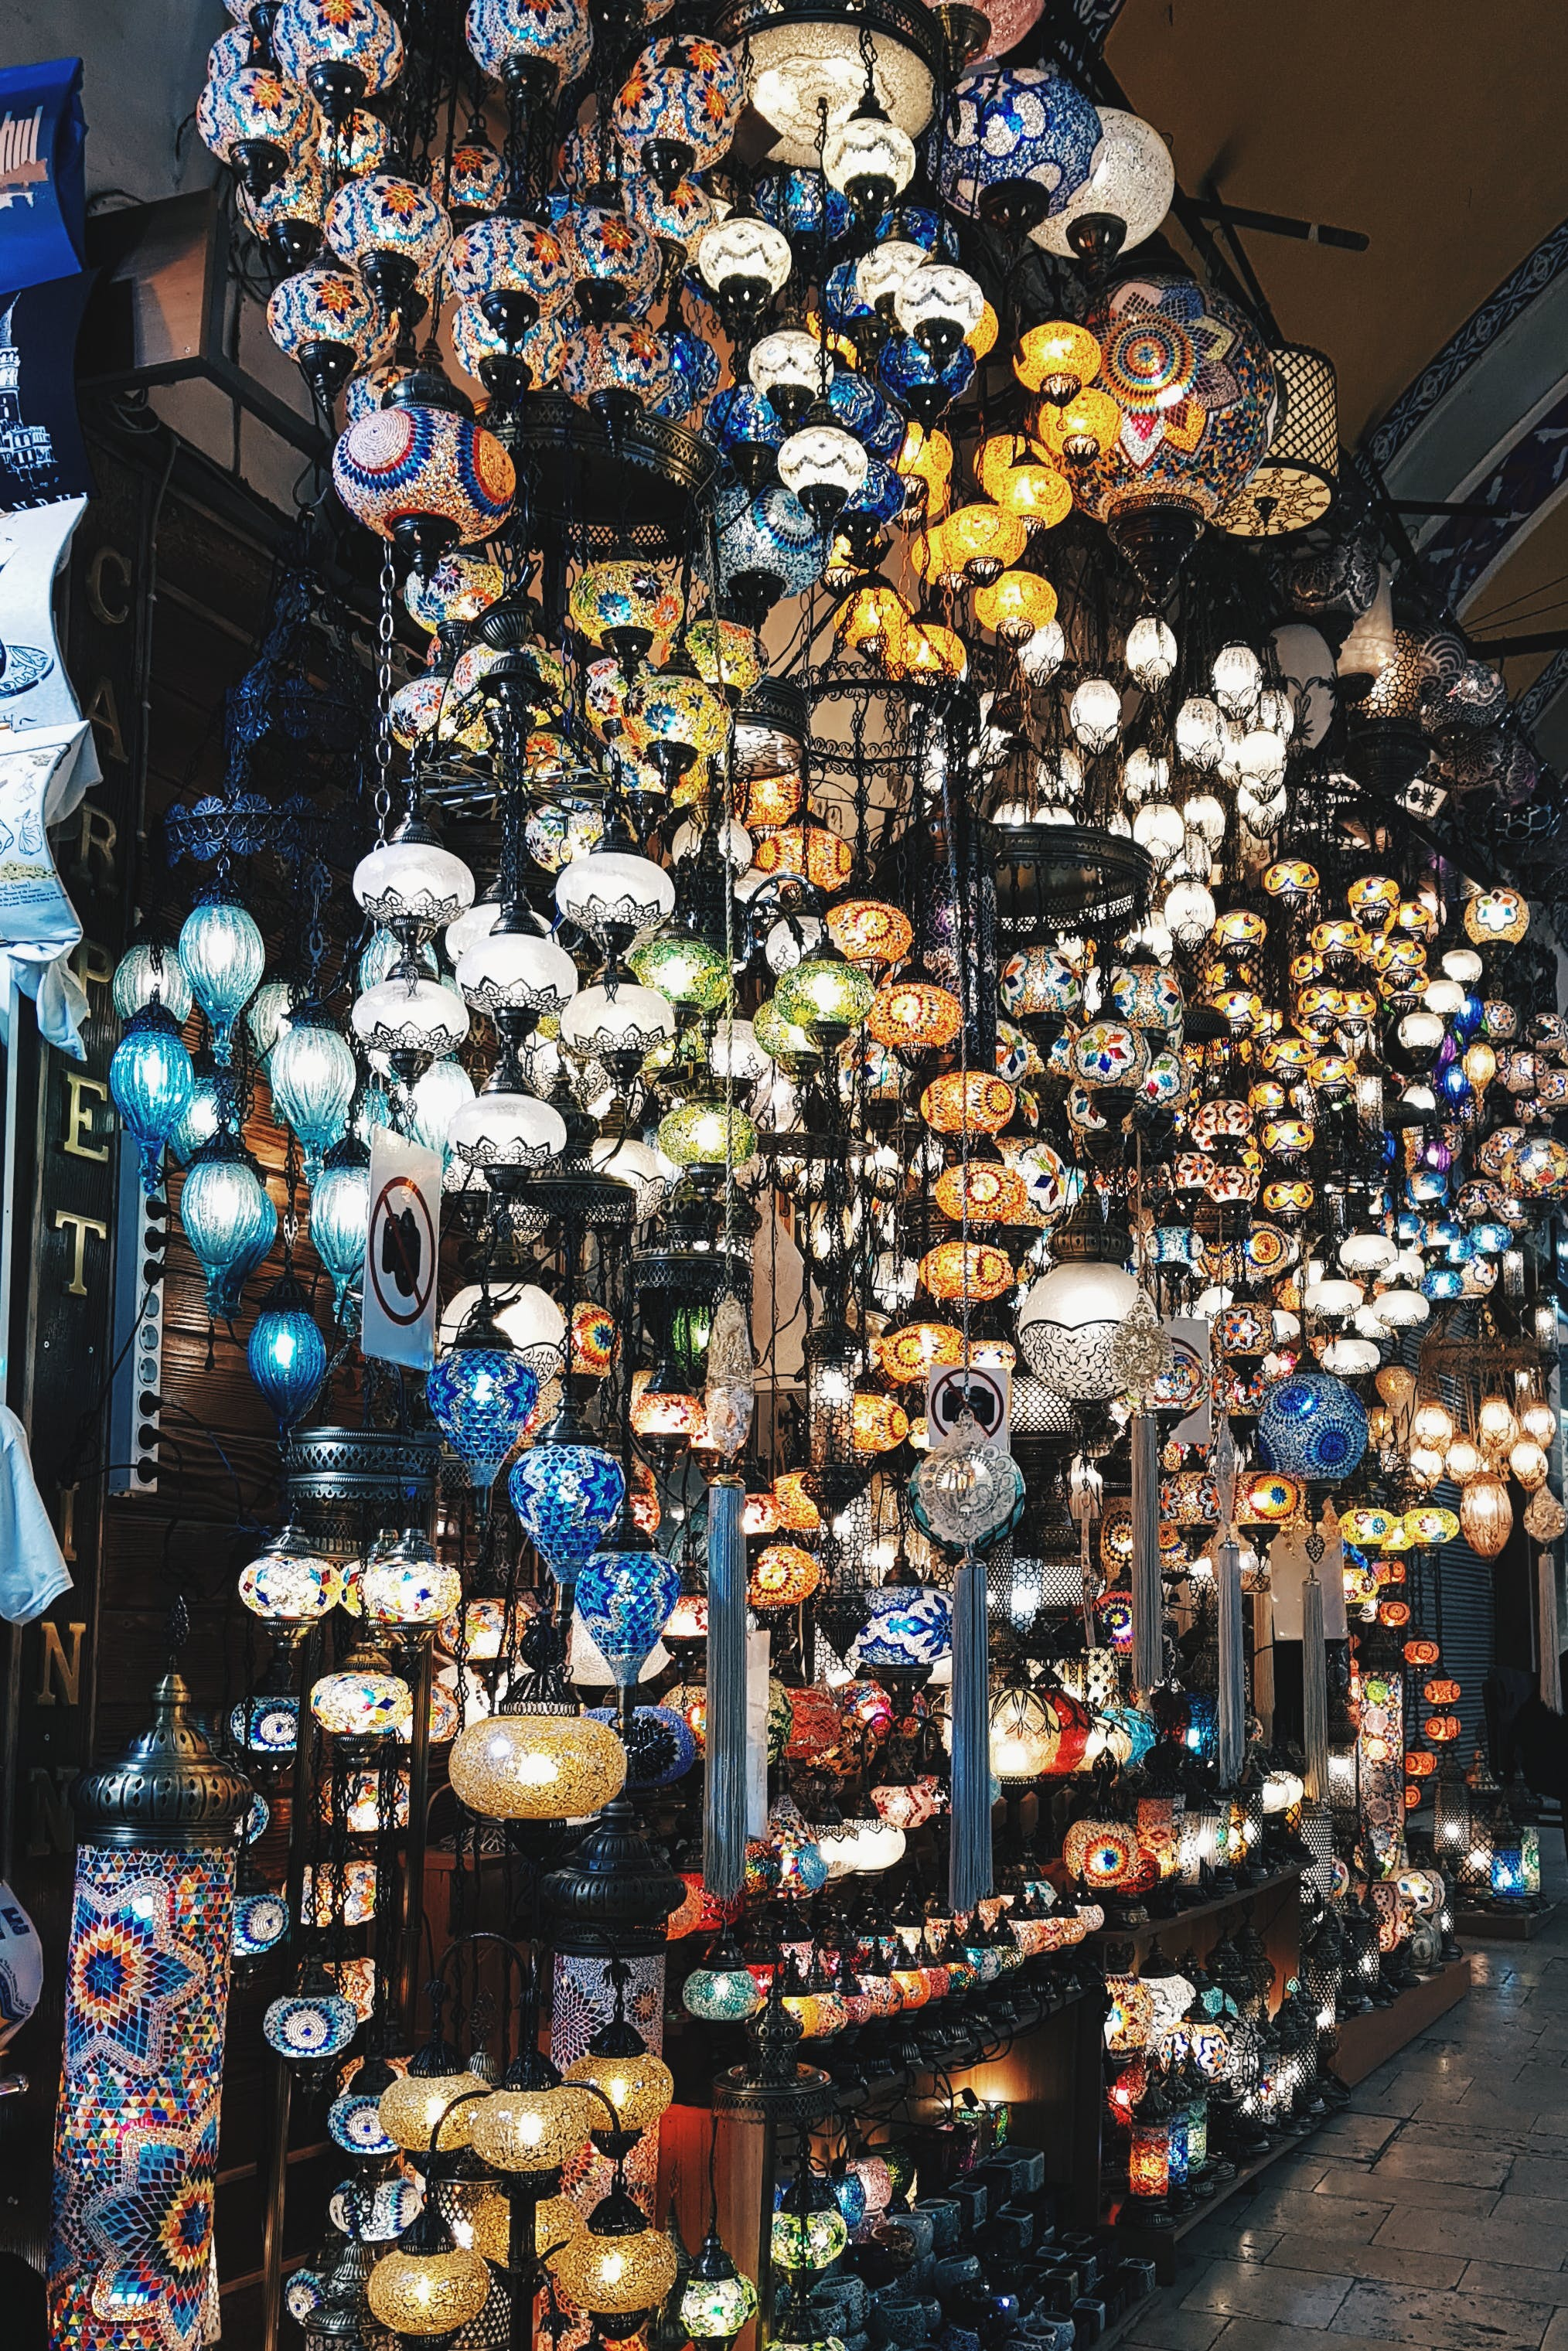 Free stock photo of candle holder, Candlelights, Istanbul, lights